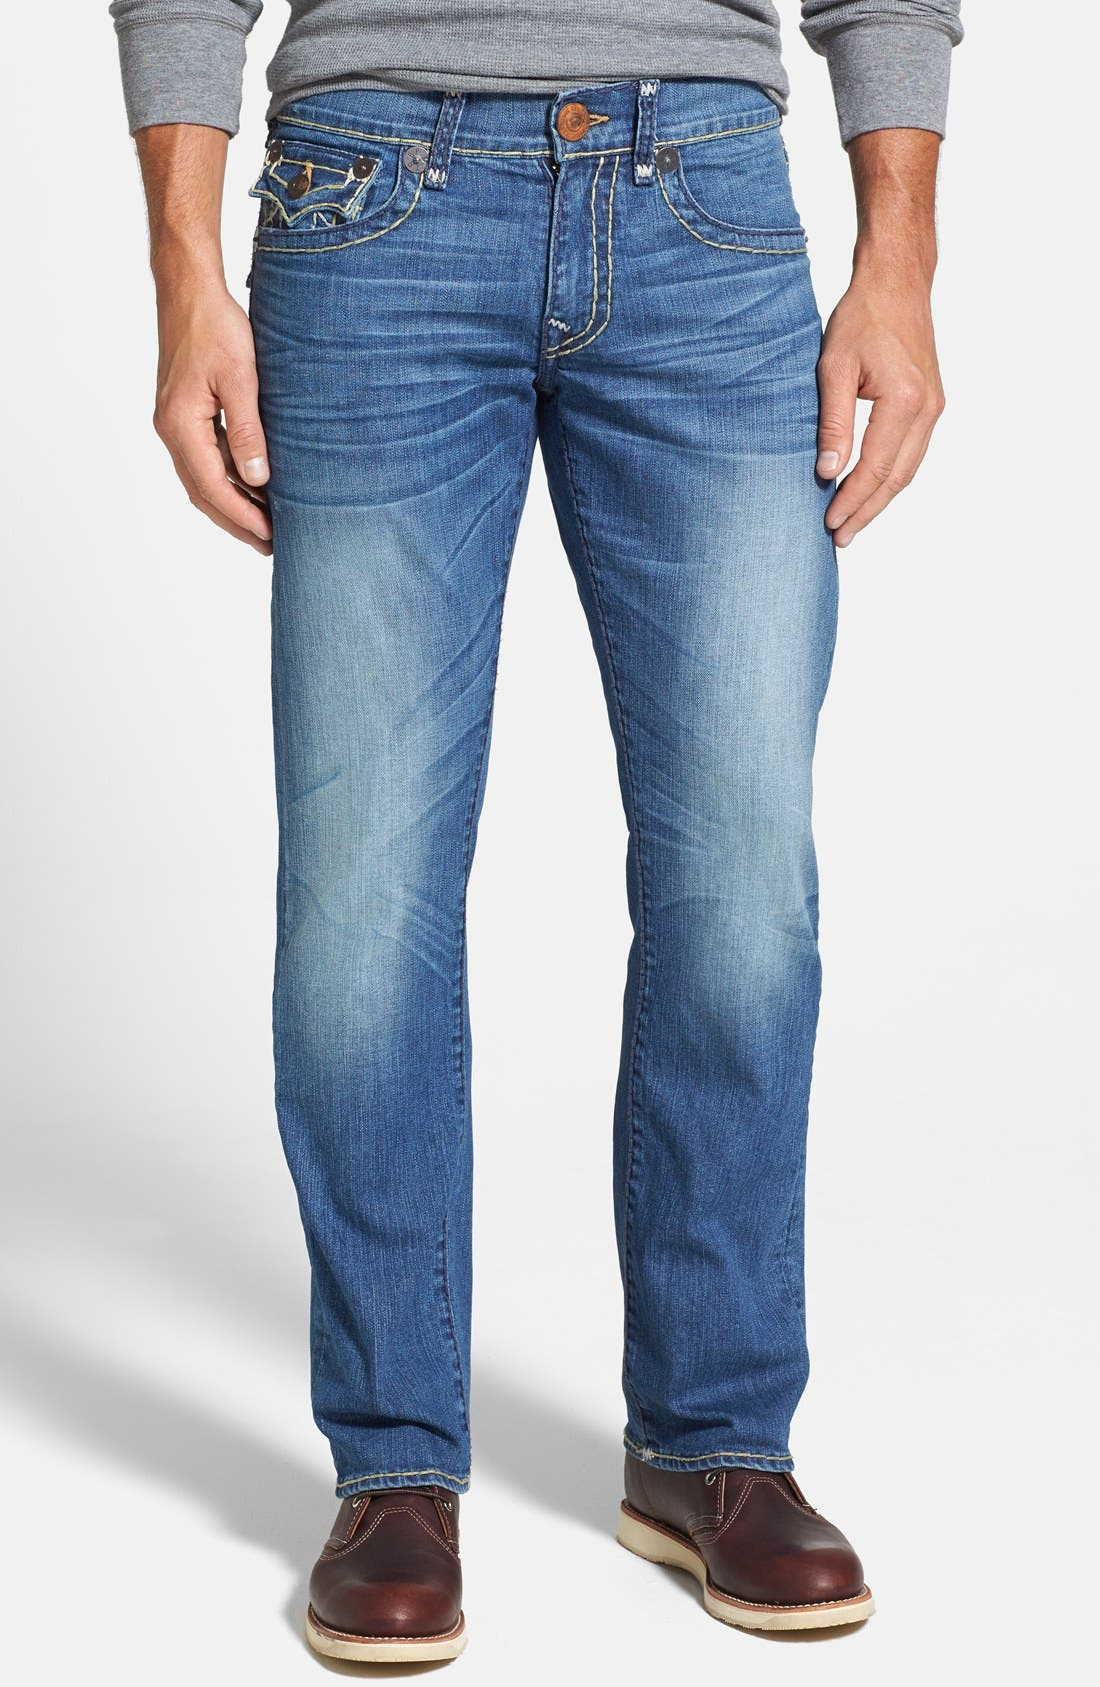 Alternate Image 2  - True Religion Brand Jeans 'Ricky' Relaxed Fit Jeans (Azwl Malibu Cruise)